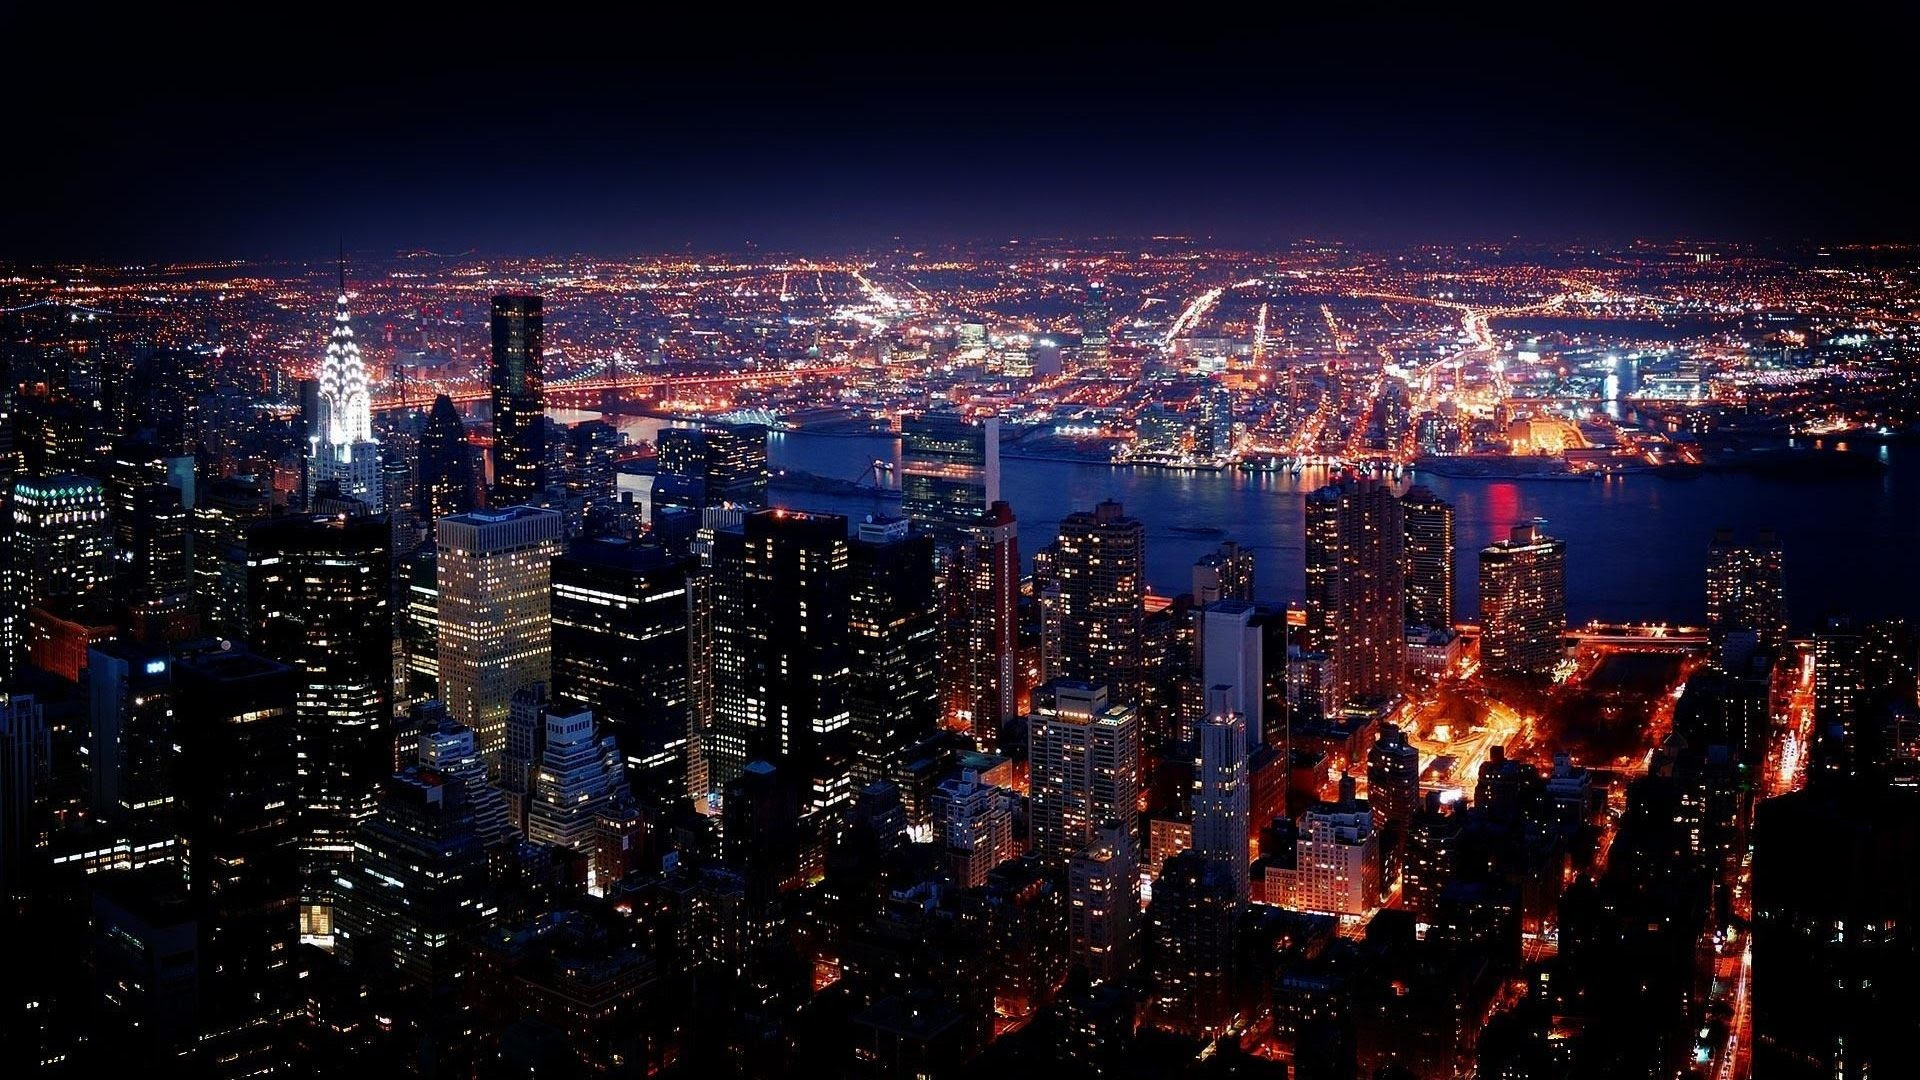 New York At Night Wallpaper 67 Images